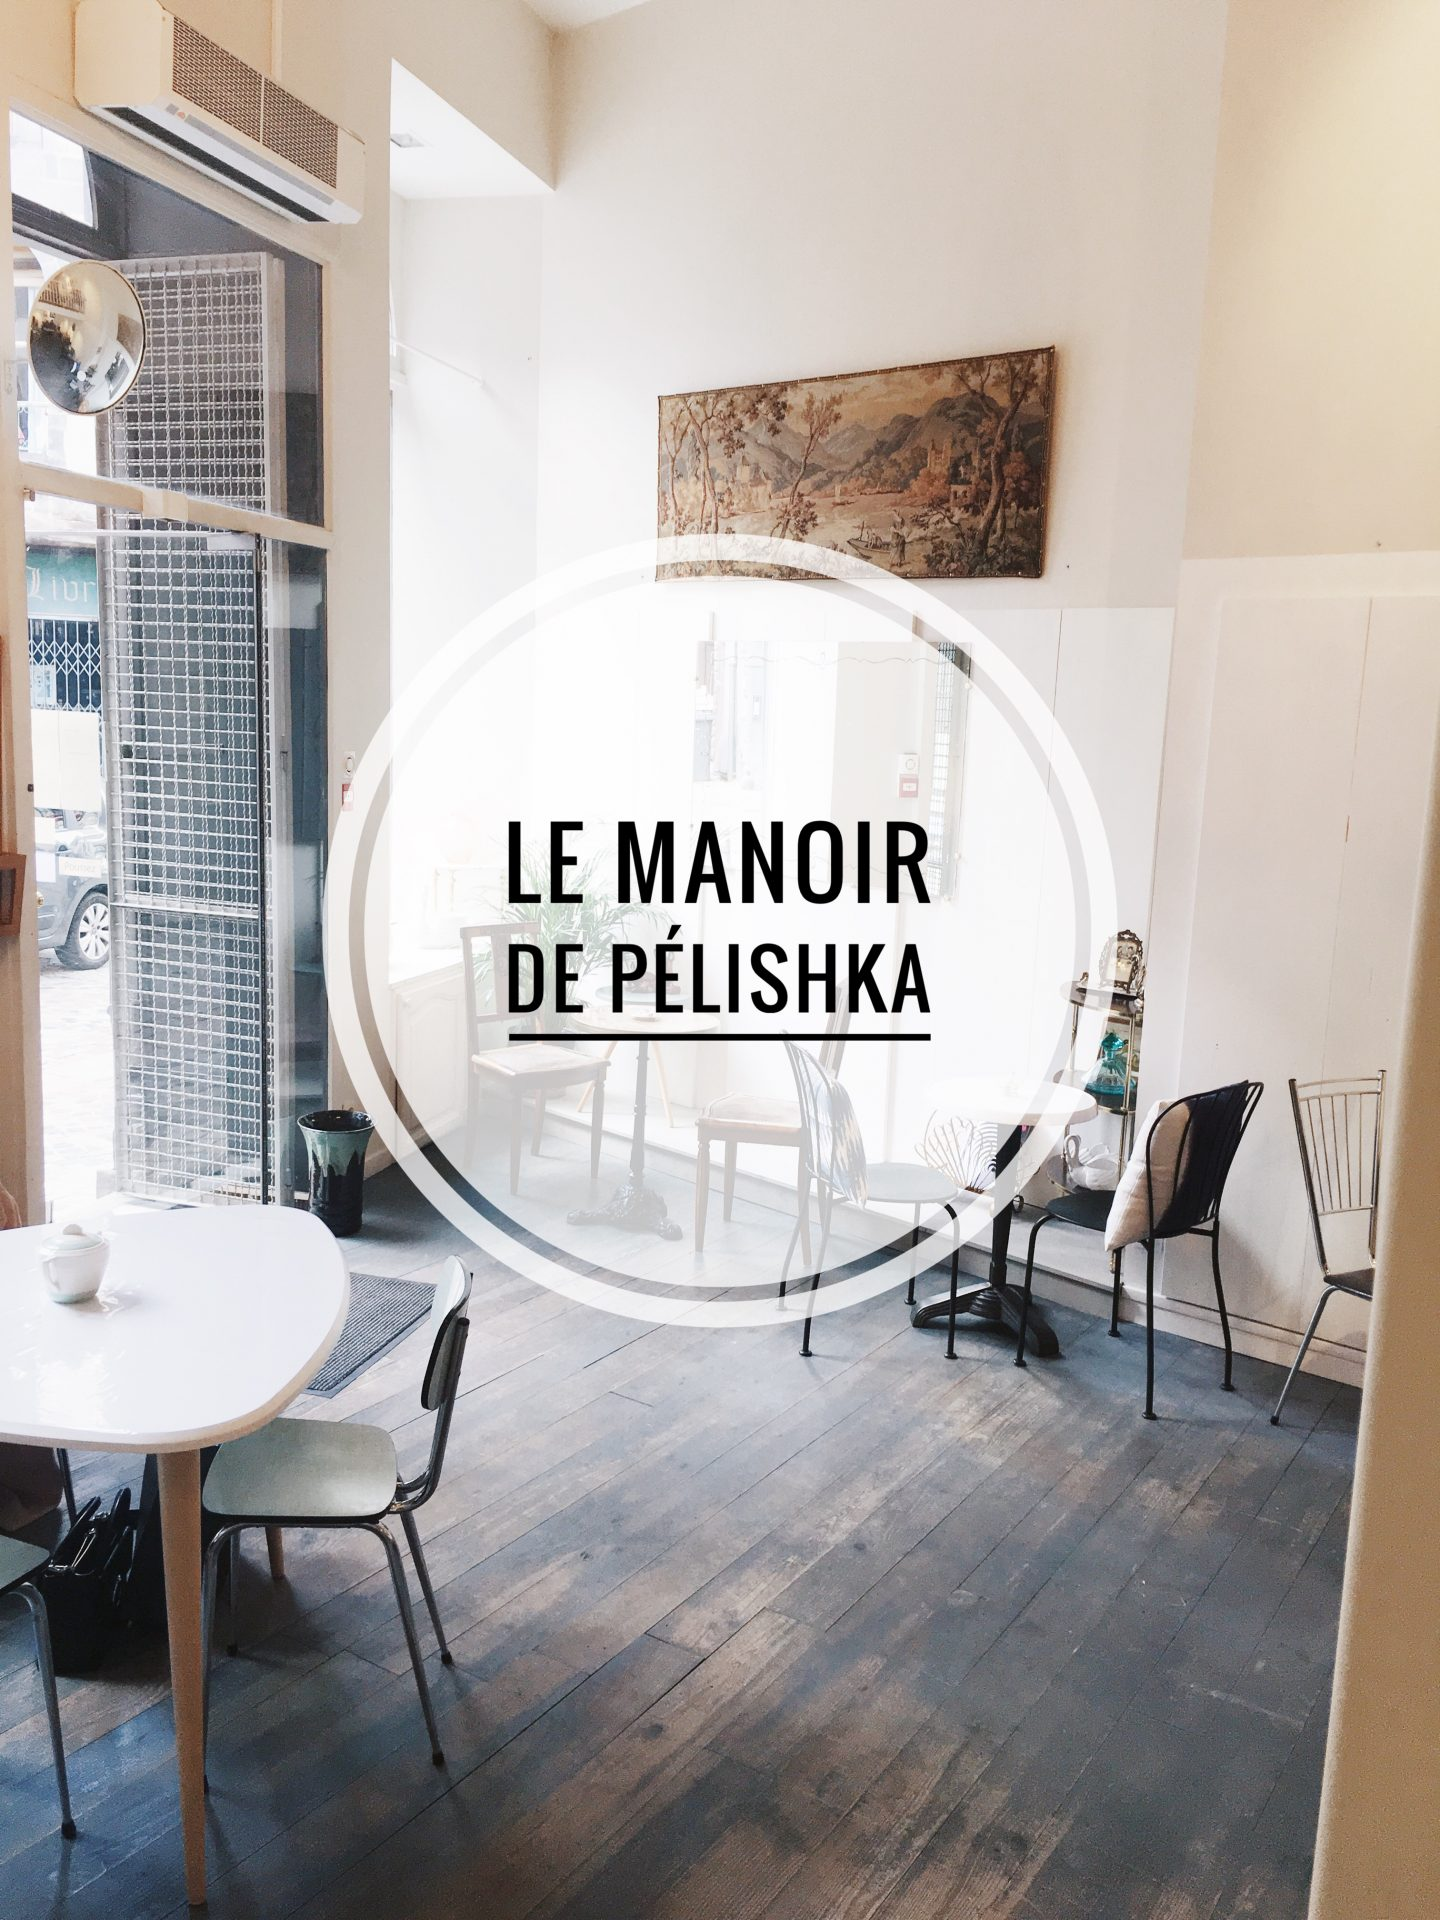 Nouveau salon de thé : Direction Le Manoir de Pélishka